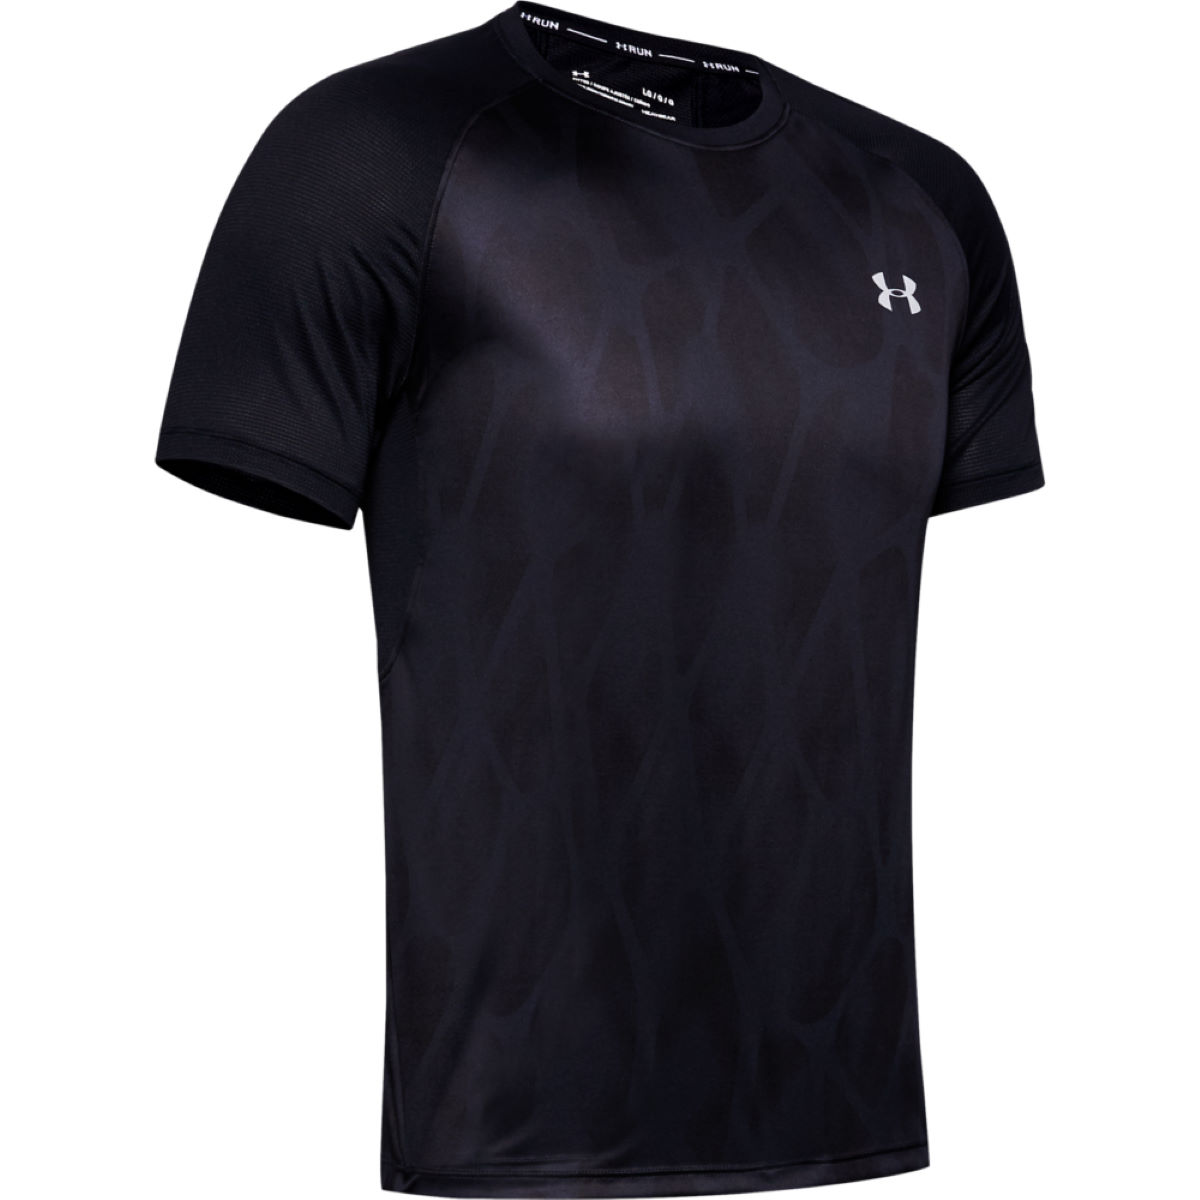 Under Armour Qualifier ISO-CHILL Printed Short Sleeve Top